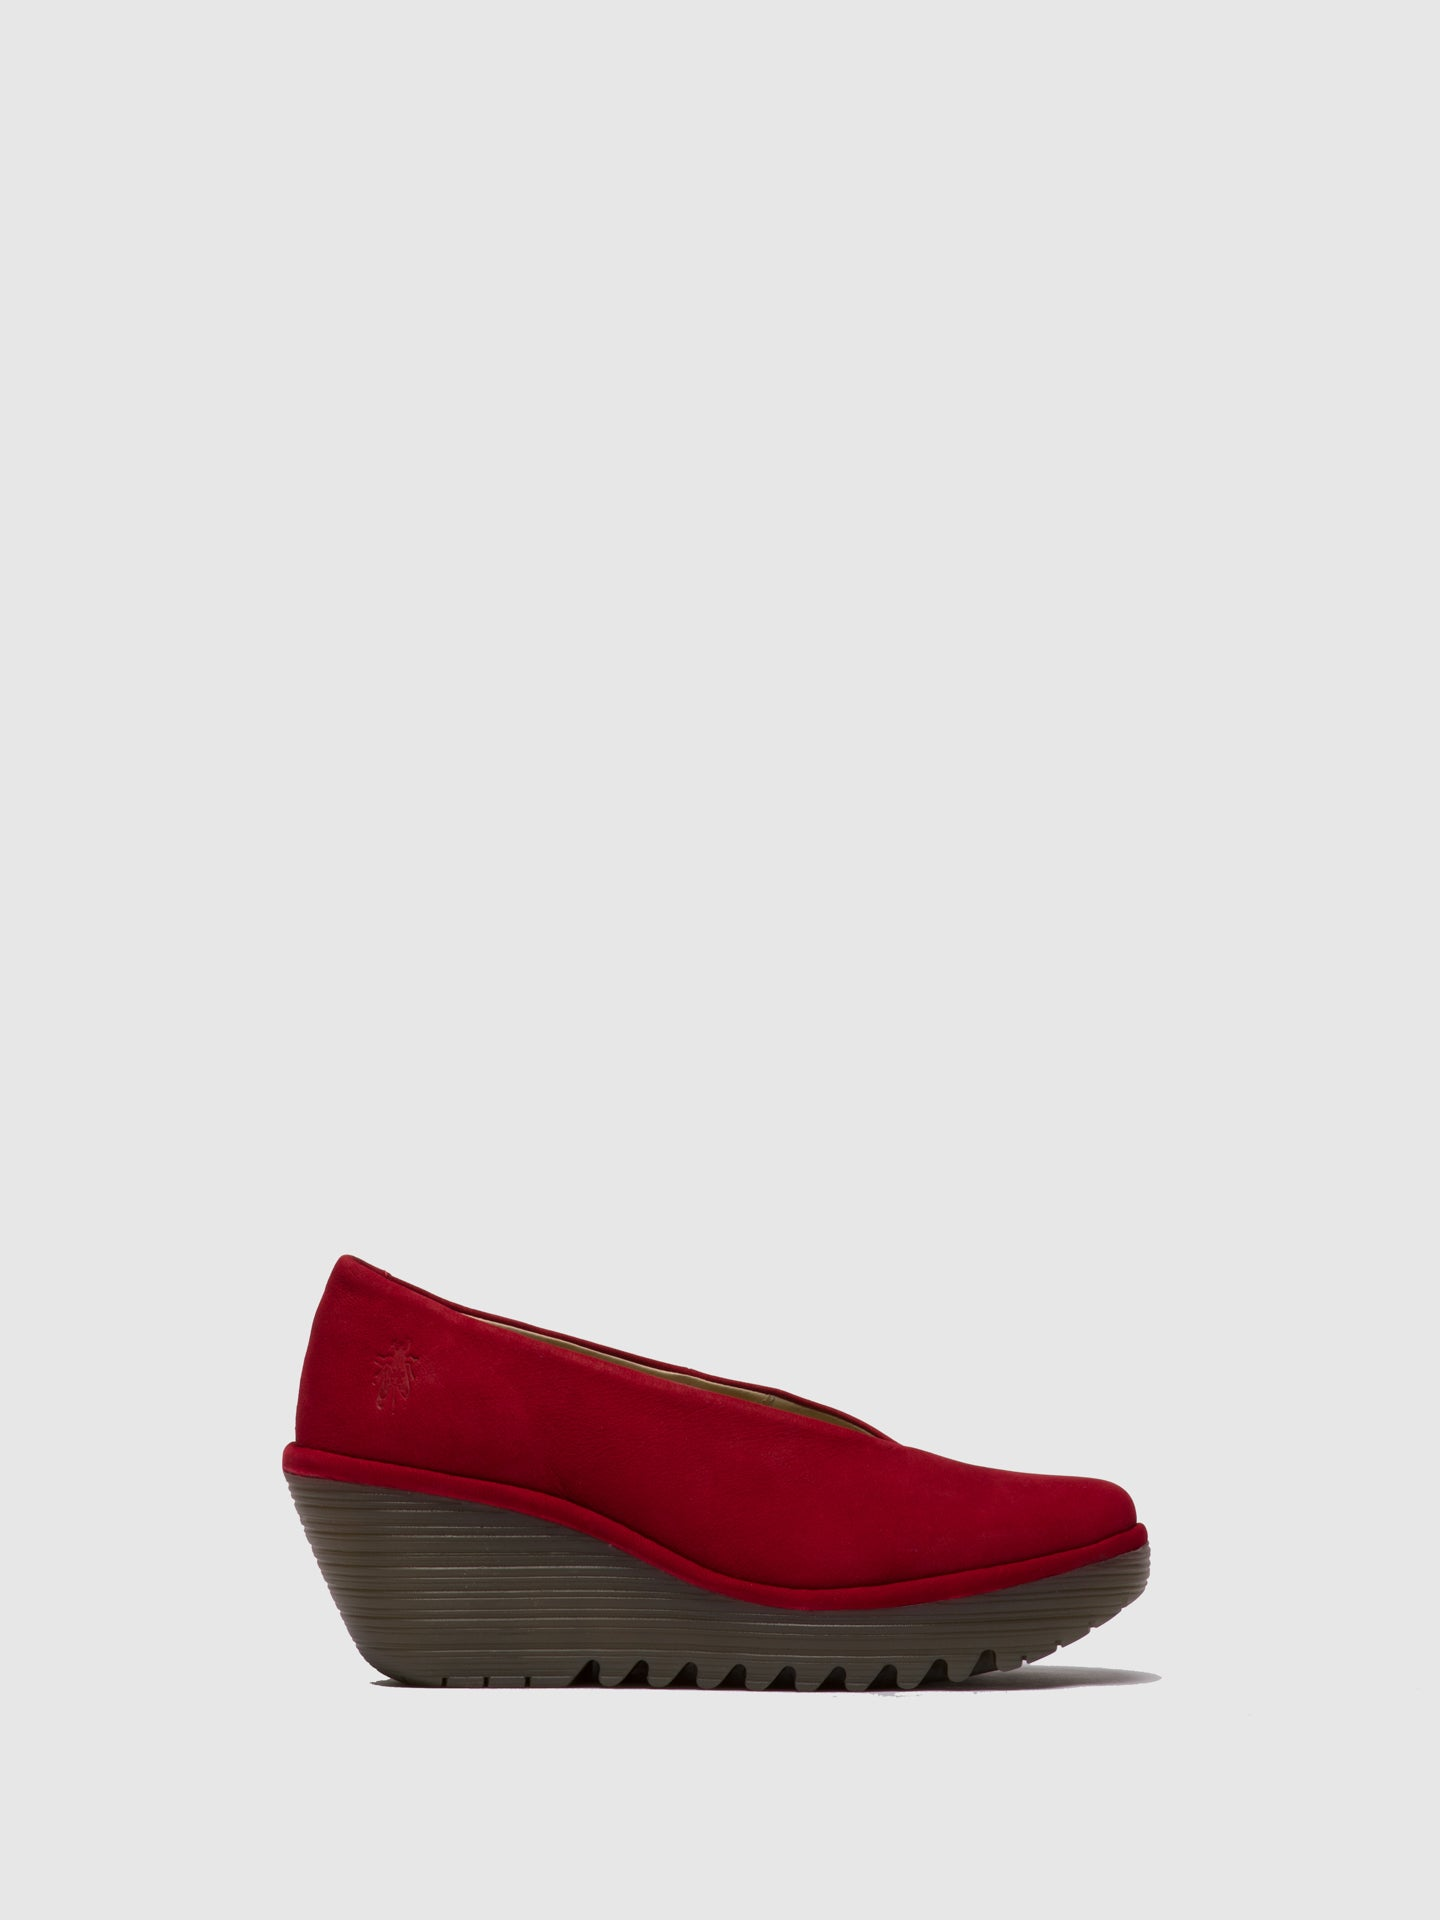 Fly London Firebrick Wedge Shoes